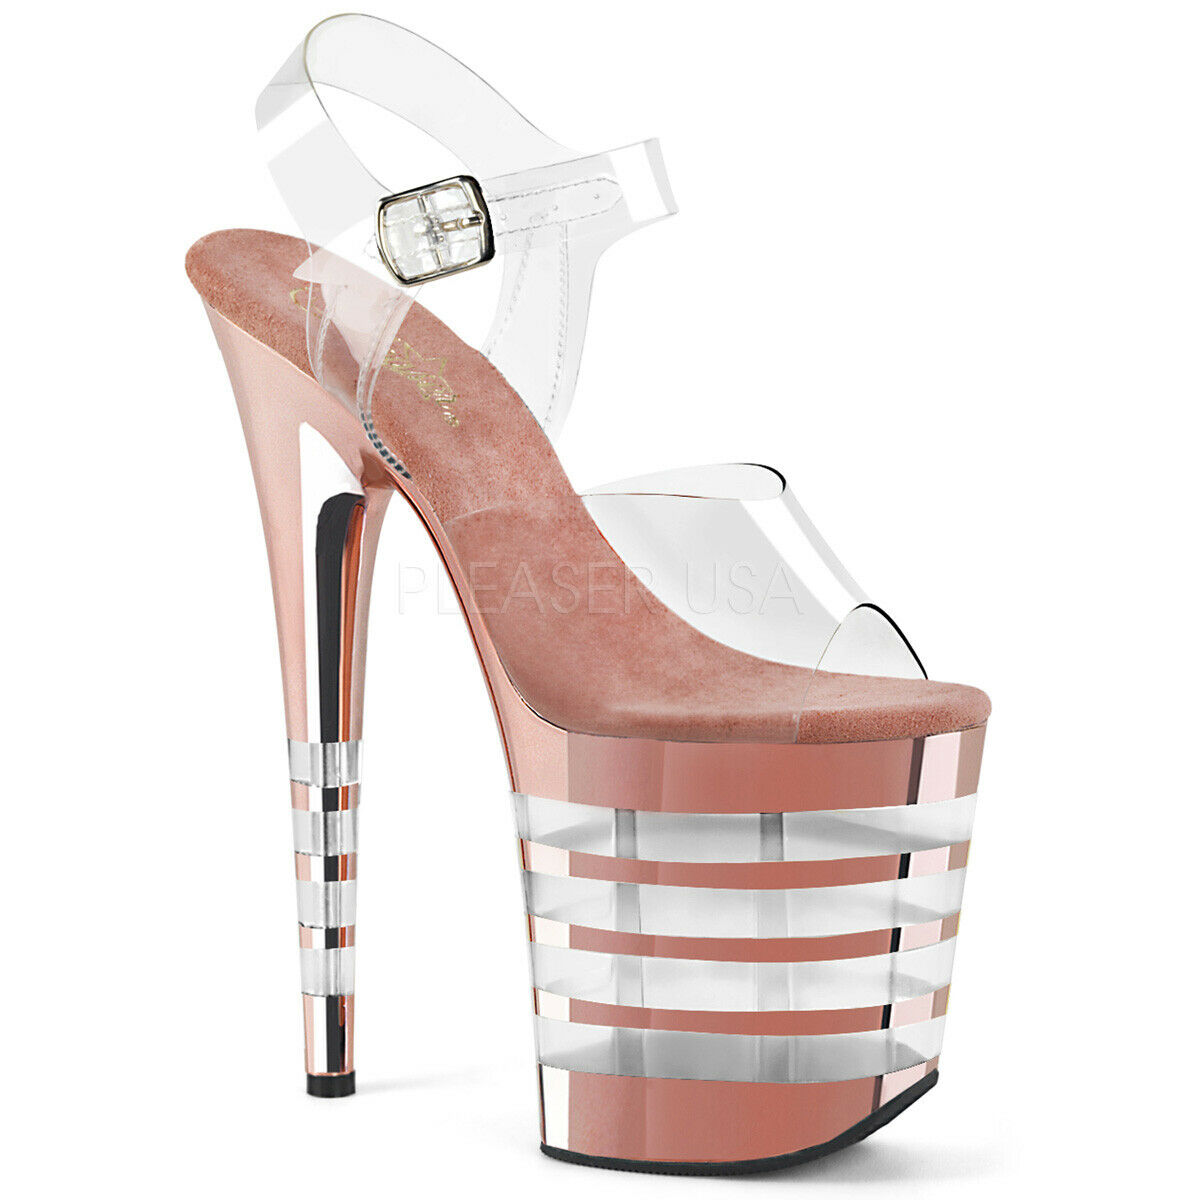 8ce5f29c6f2 PLEASER Sexy 8 Heel Lined pink pink pink gold Chrome Platform Clear  Stripper Dancer shoes 8b06cf